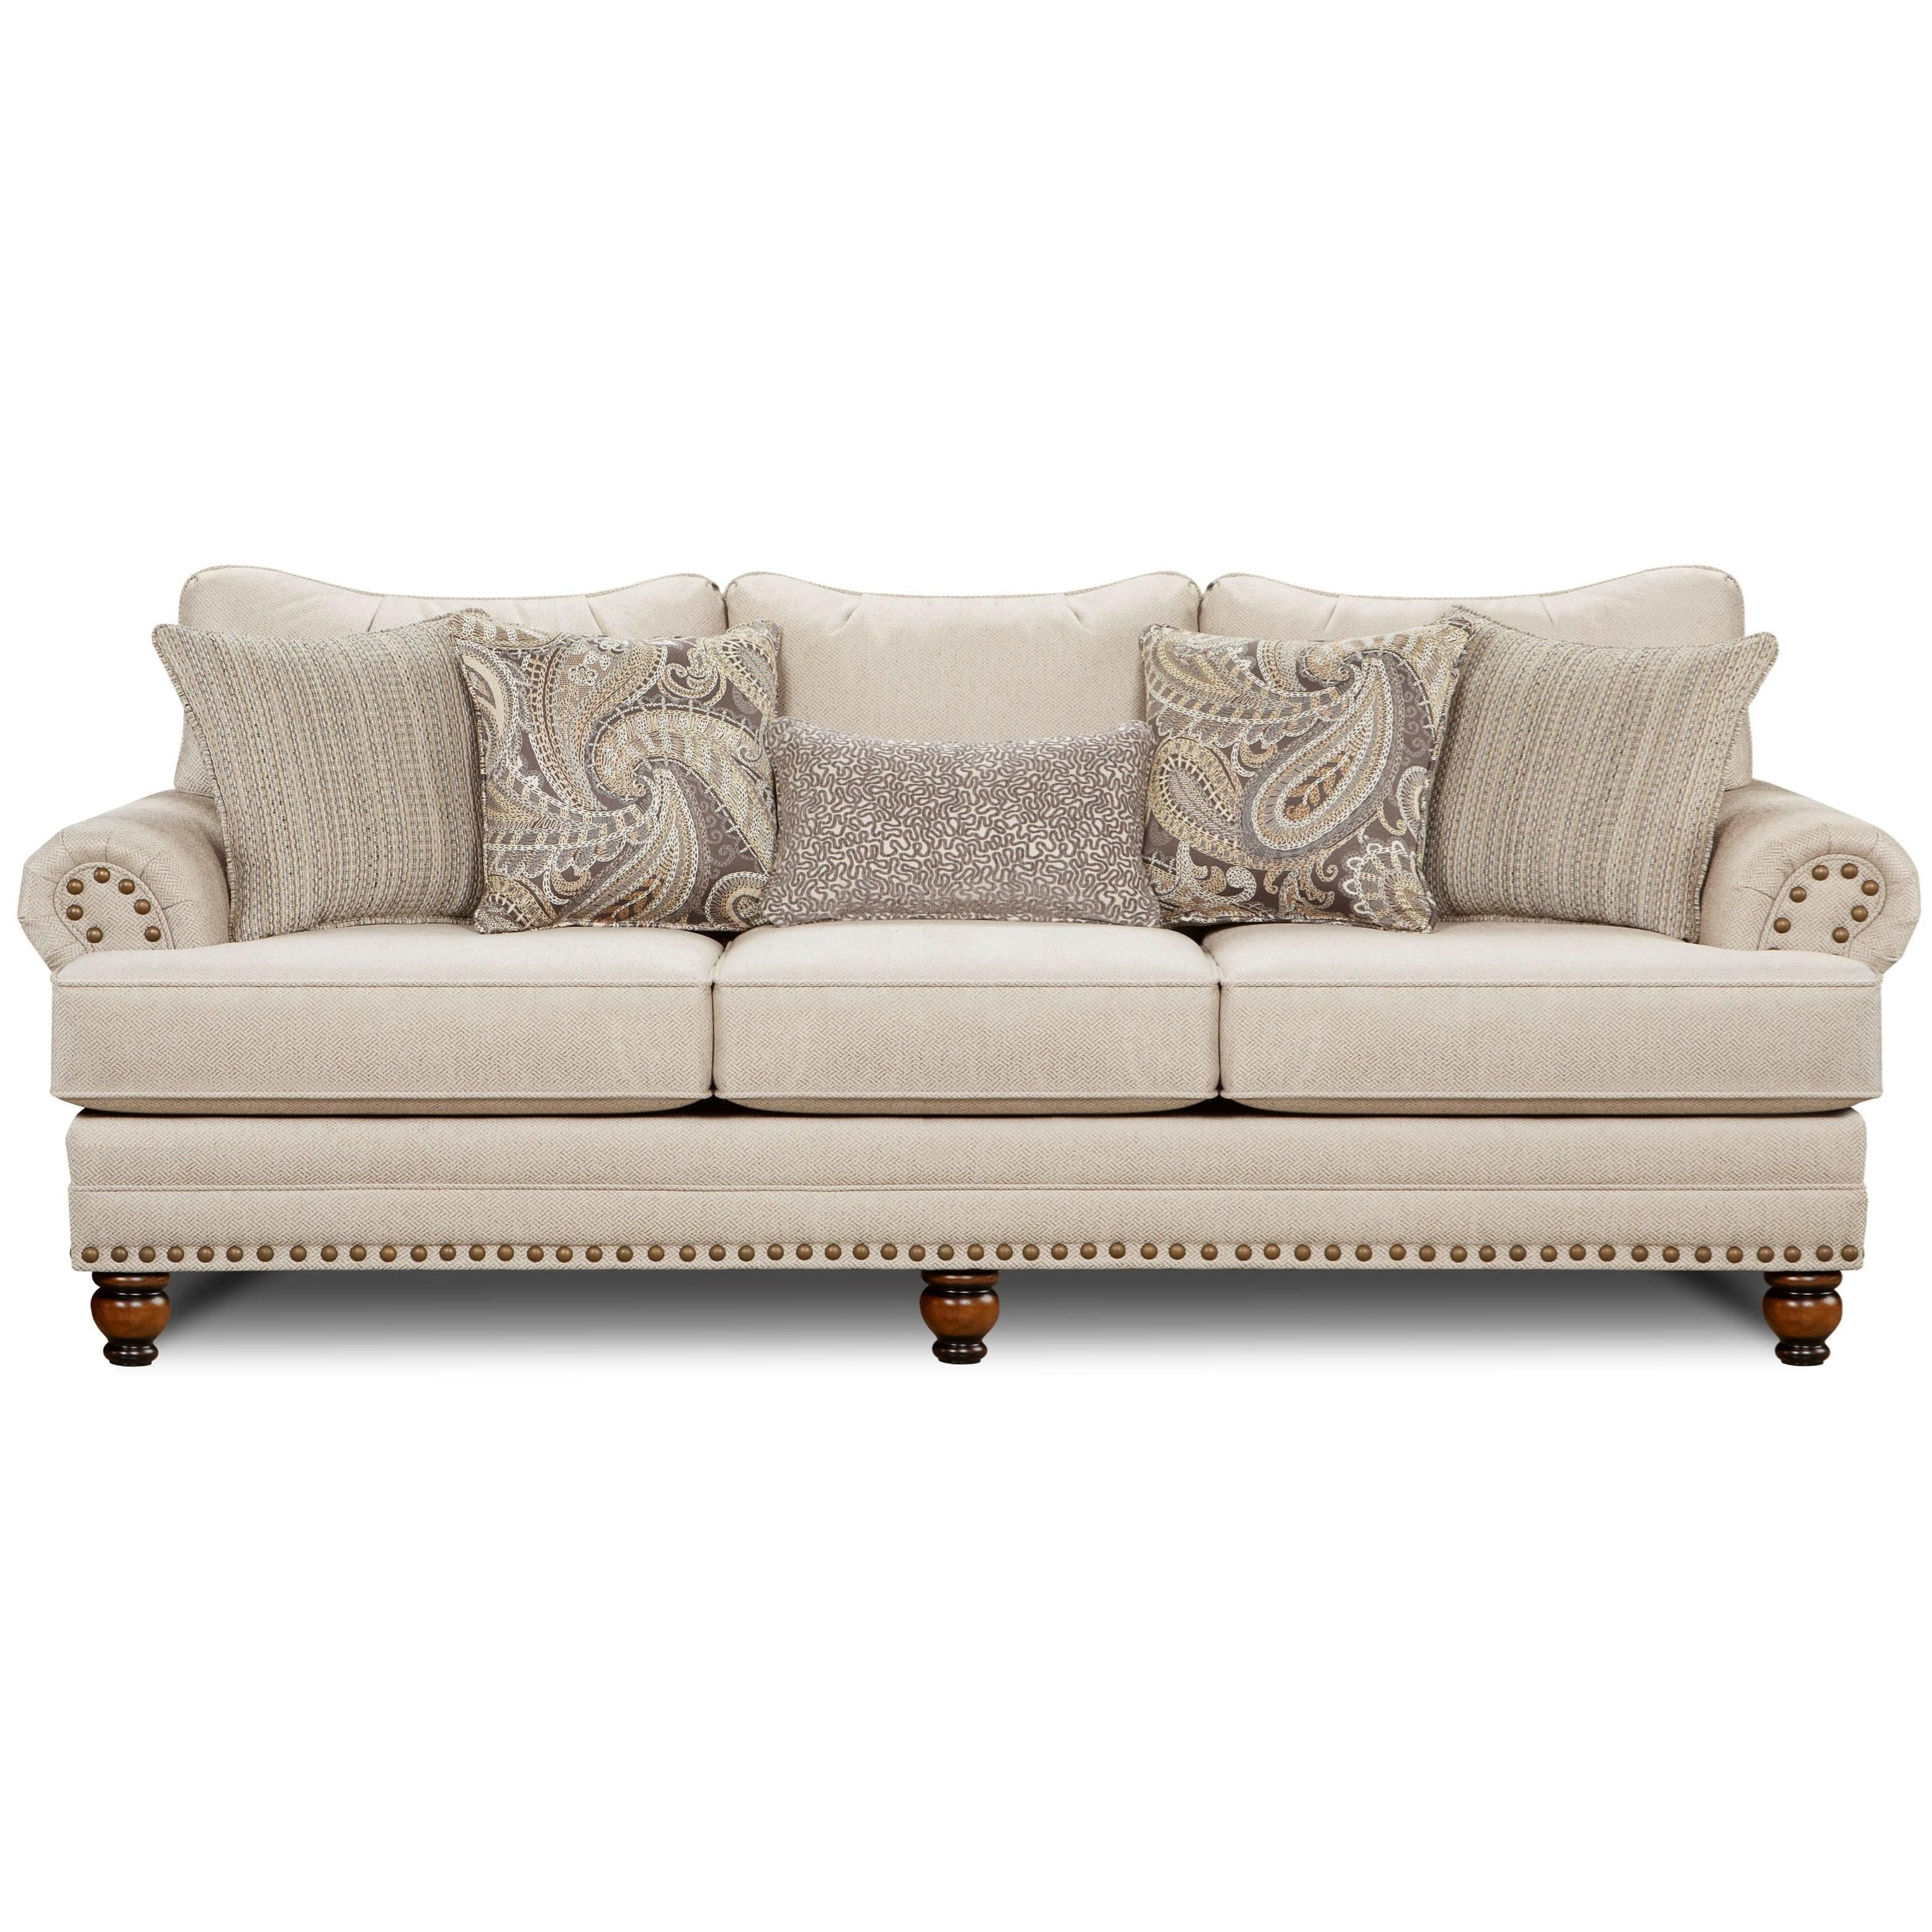 2820 Sofa by Fusion Furniture at Miller Waldrop Furniture and Decor